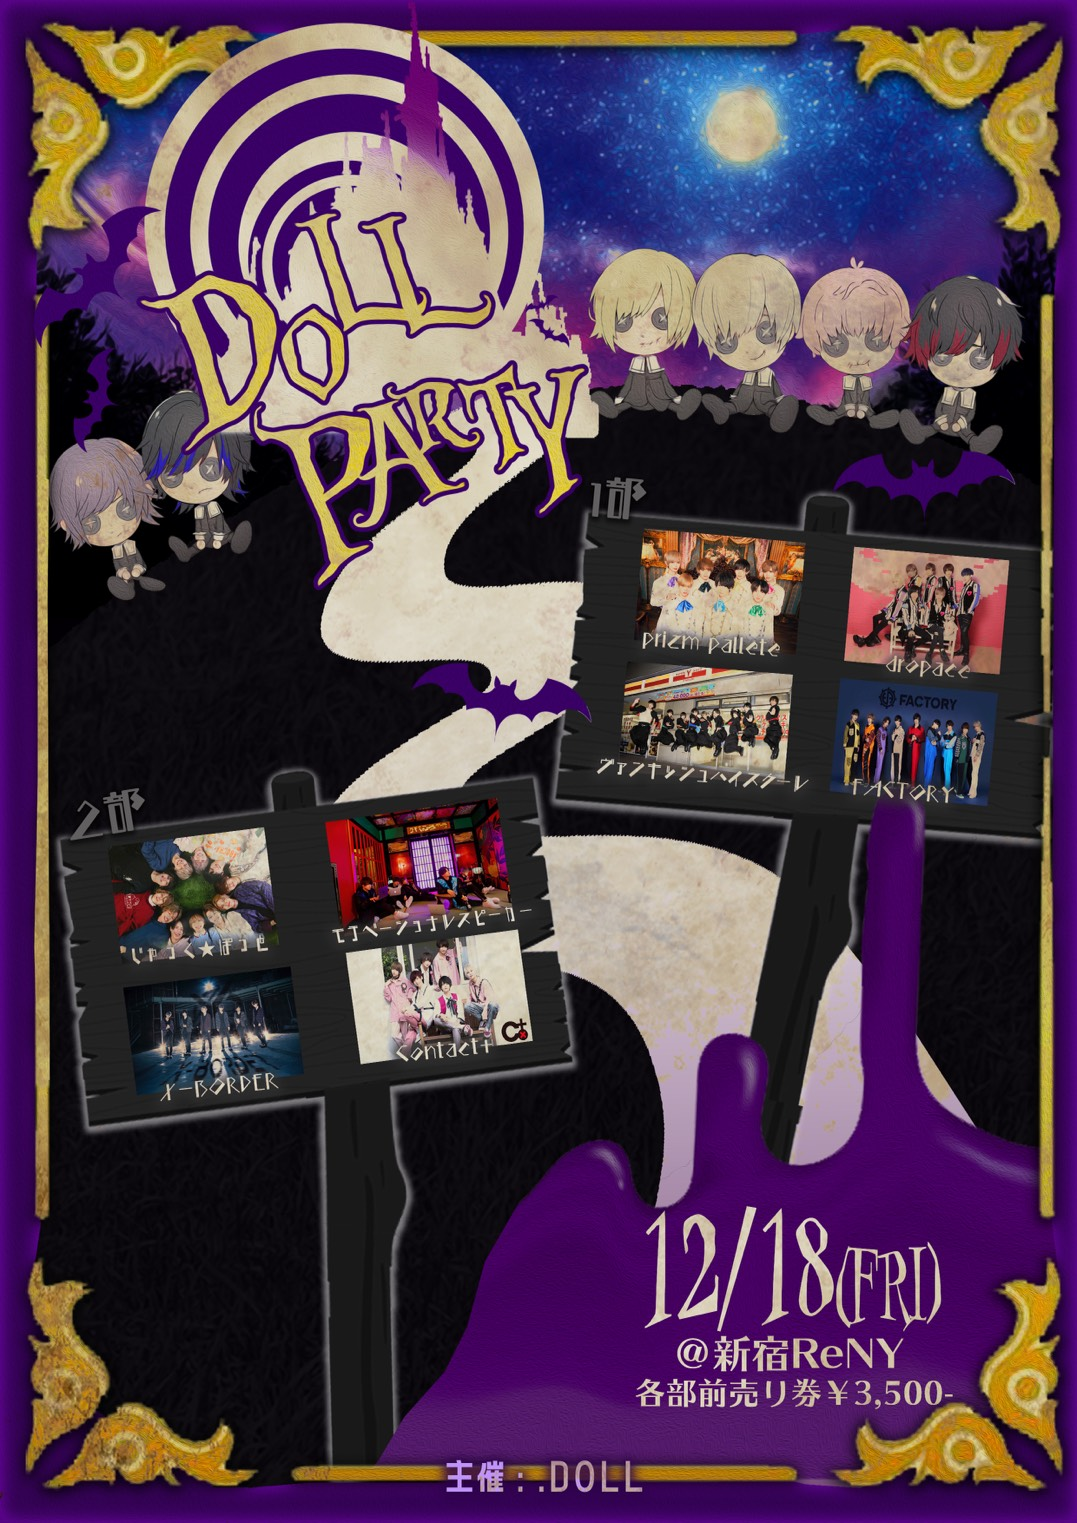 DOLL PARTY 【2部】